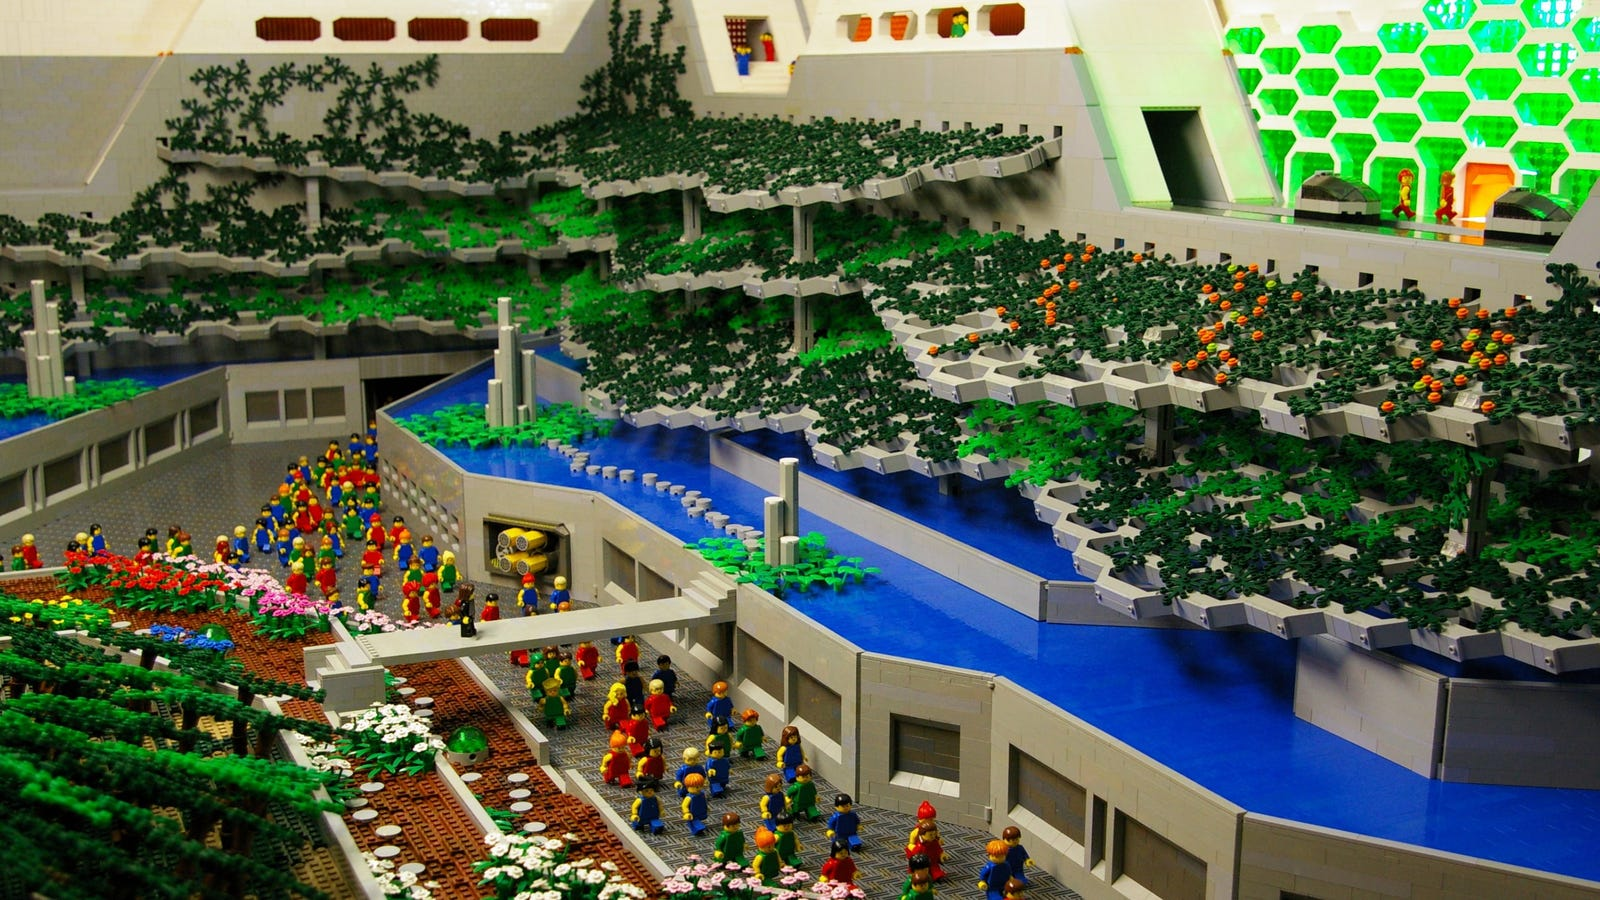 Logan S Run Depicted As A Giant Lego Diorama